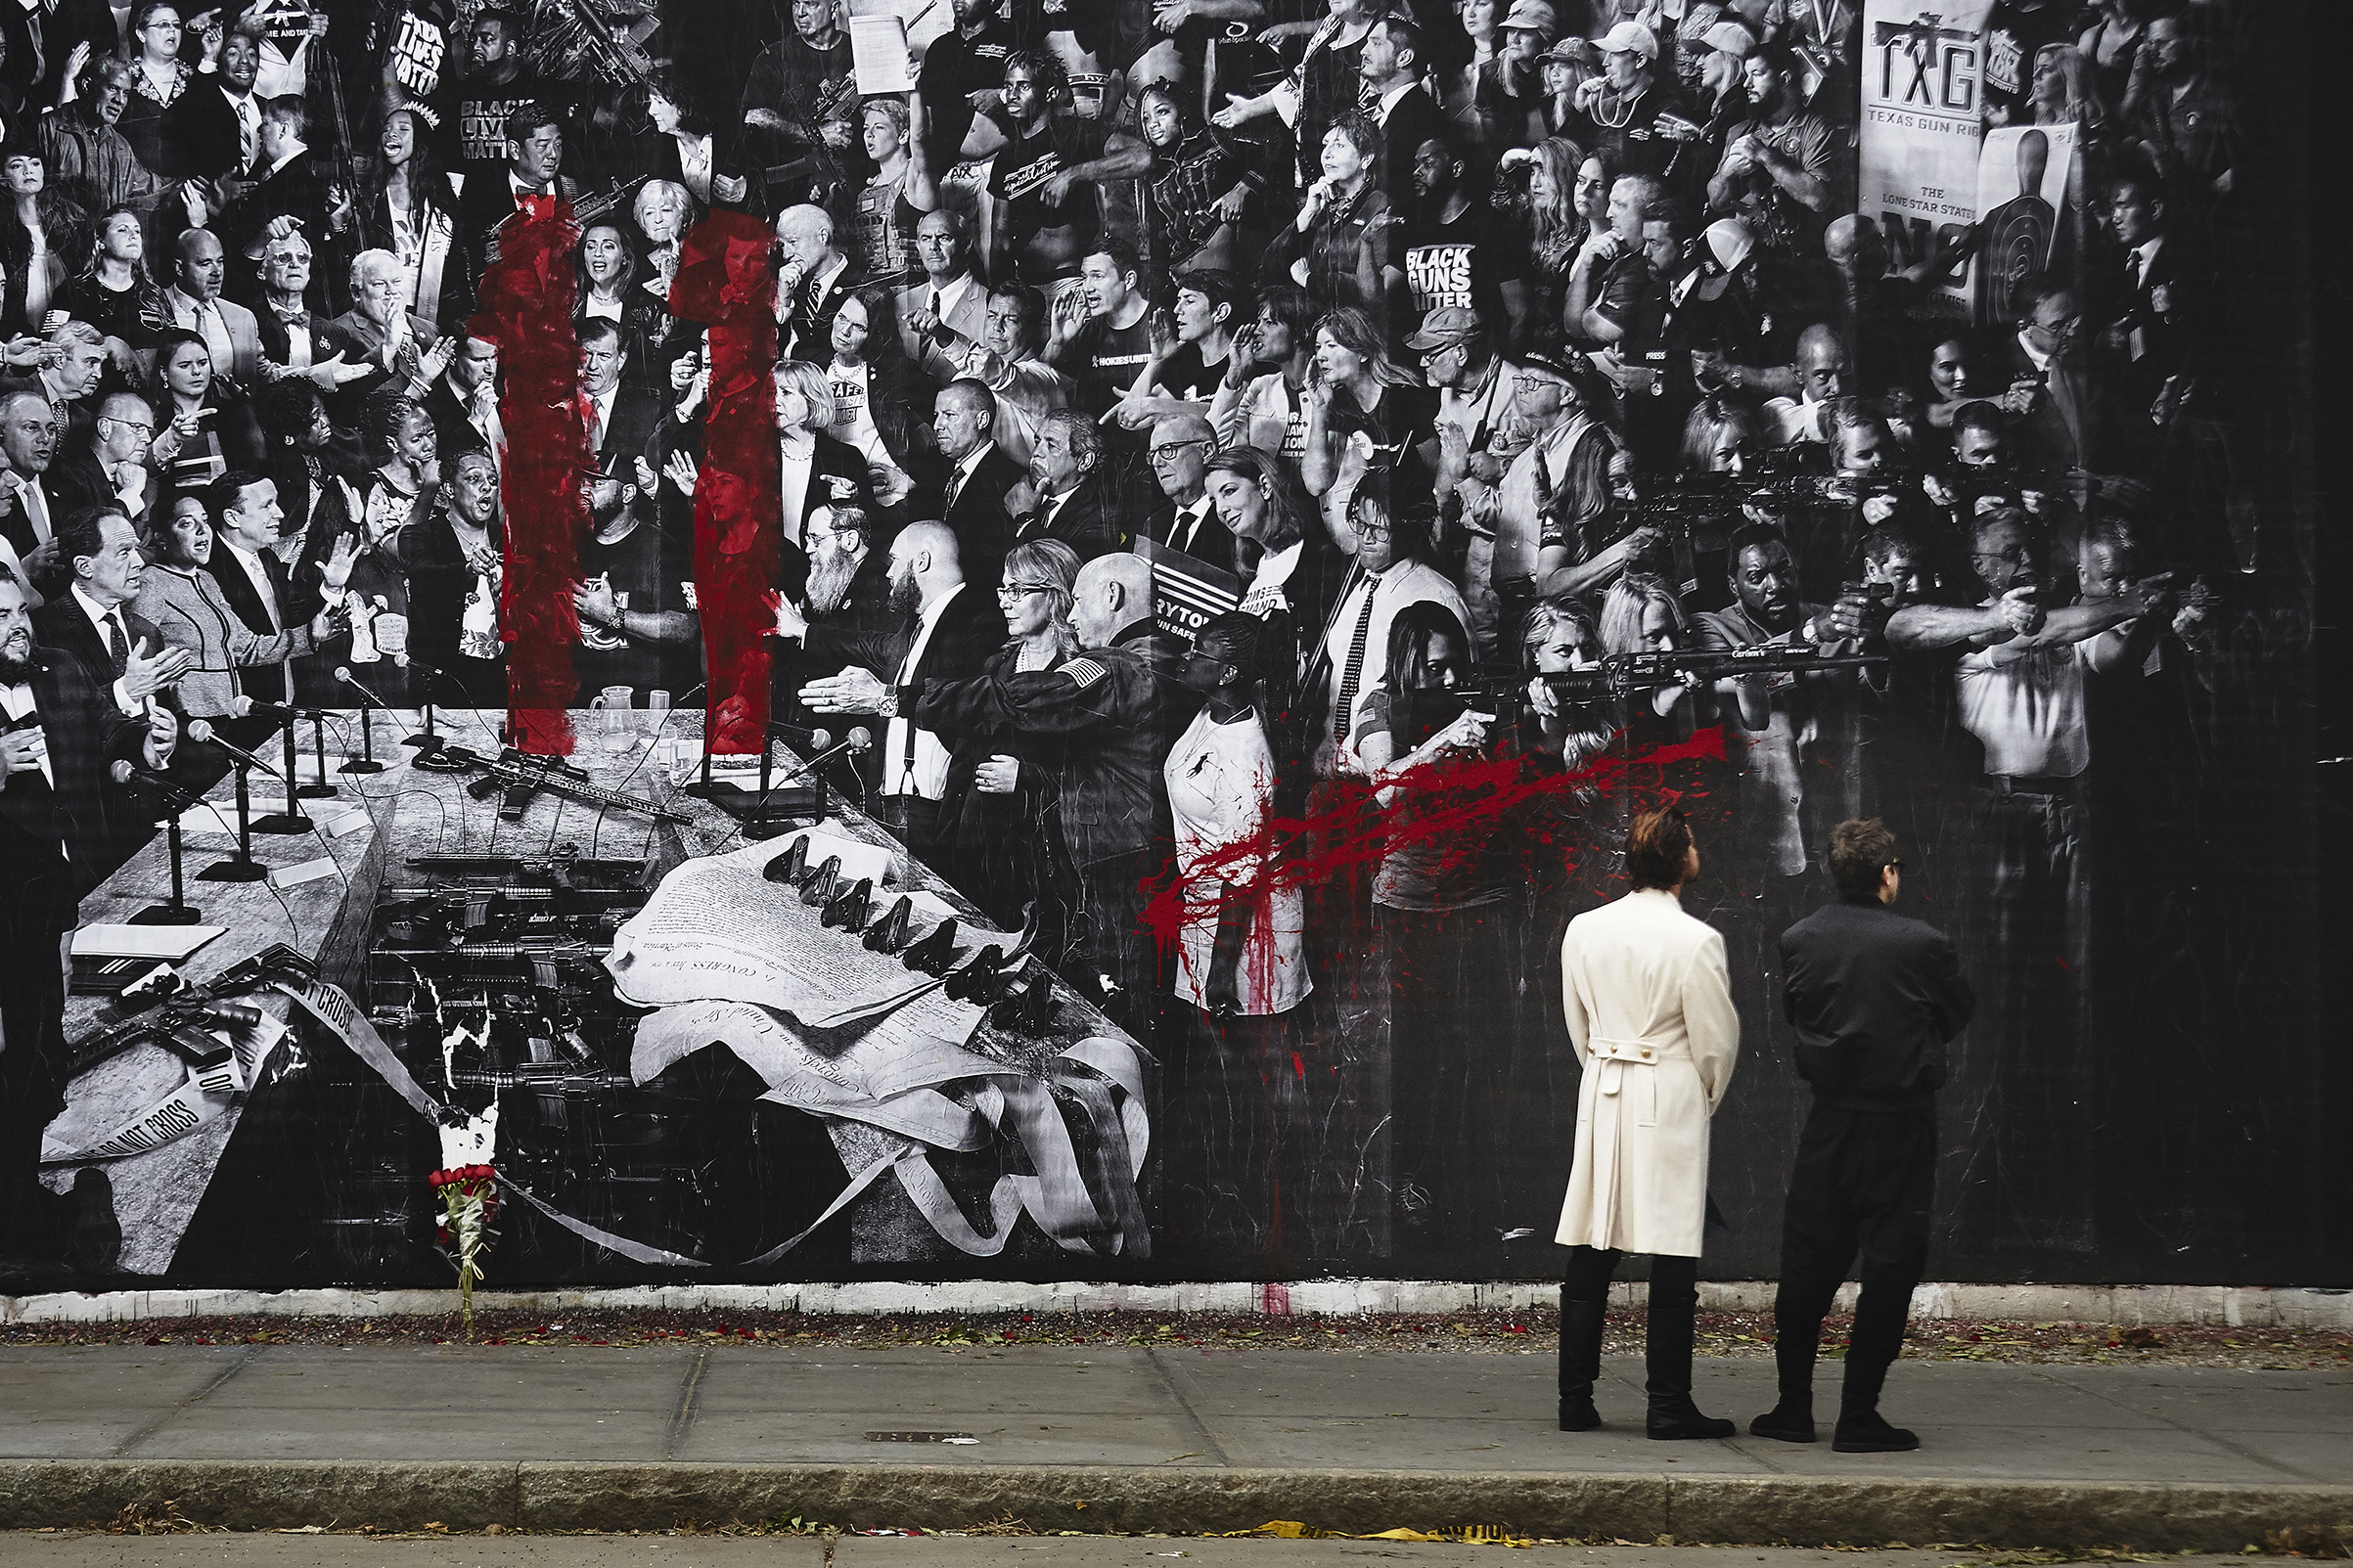 A red spray painted number 11, an apparent reference to the individuals slain in Pittsburgh, is seen on the  Guns in America  mural created by TIME and the artist JR on the Houston Bowery Wall in New York City.